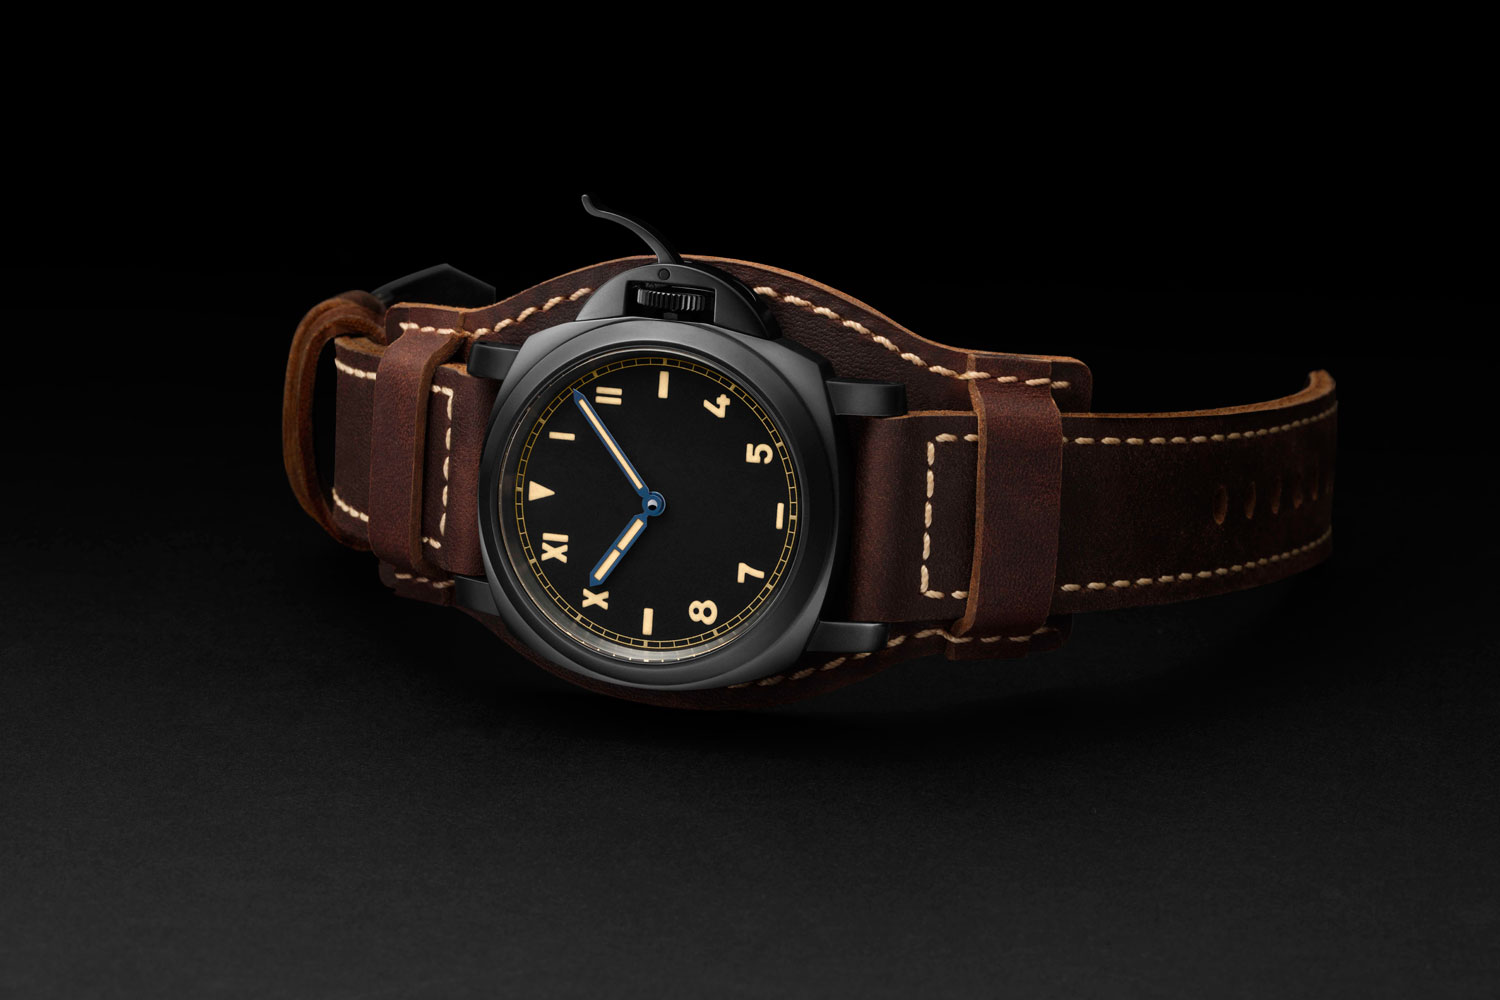 Panerai Luminor California 8 Days DLC